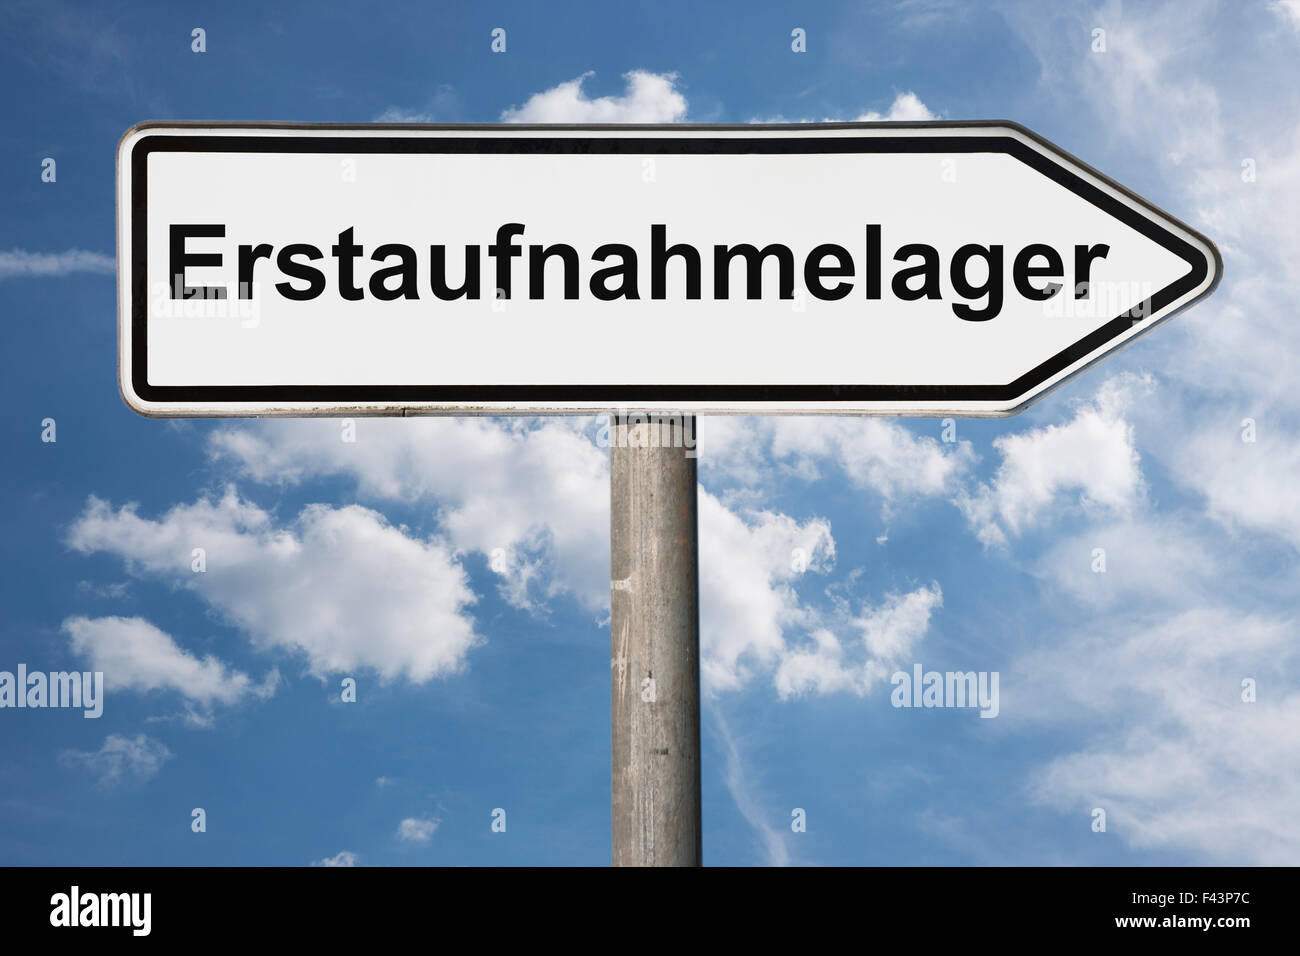 Detail photo of a signpost with the German title Erstaufnahmelager (Initial reception center) - Stock Image